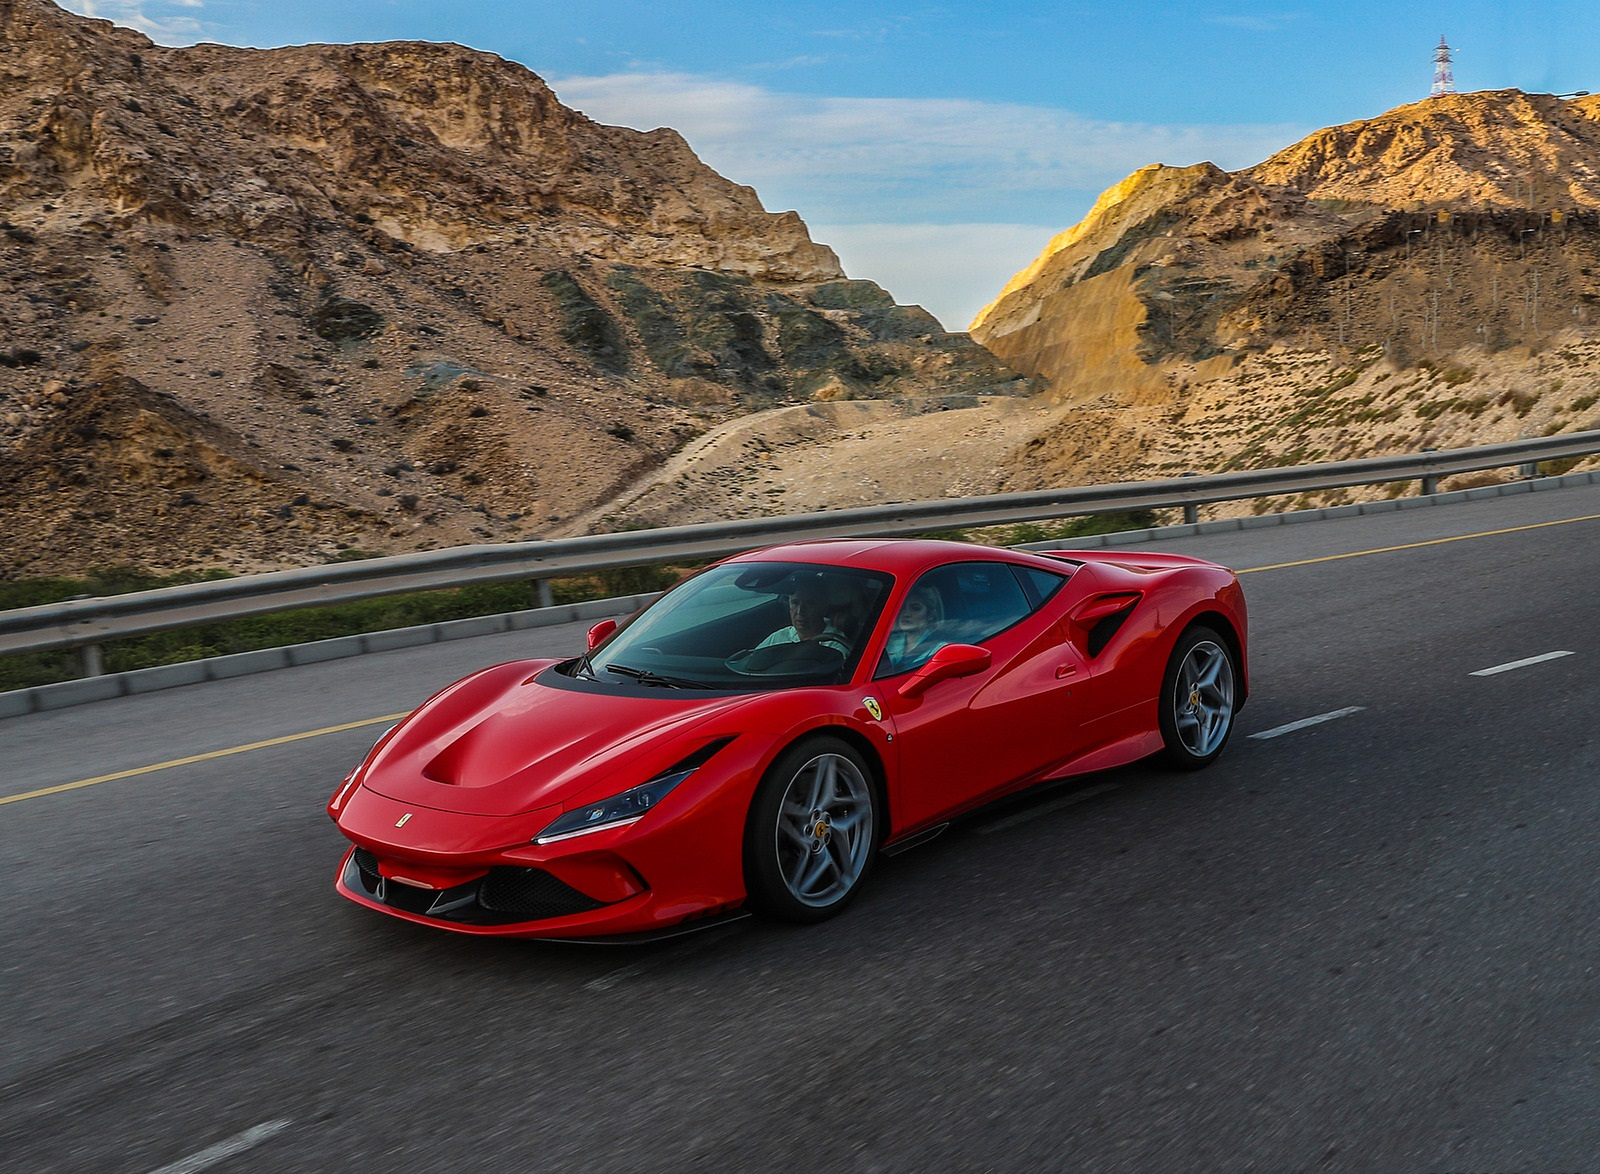 2020 Ferrari F8 Tributo Wallpapers 23 Hd Images Newcarcars